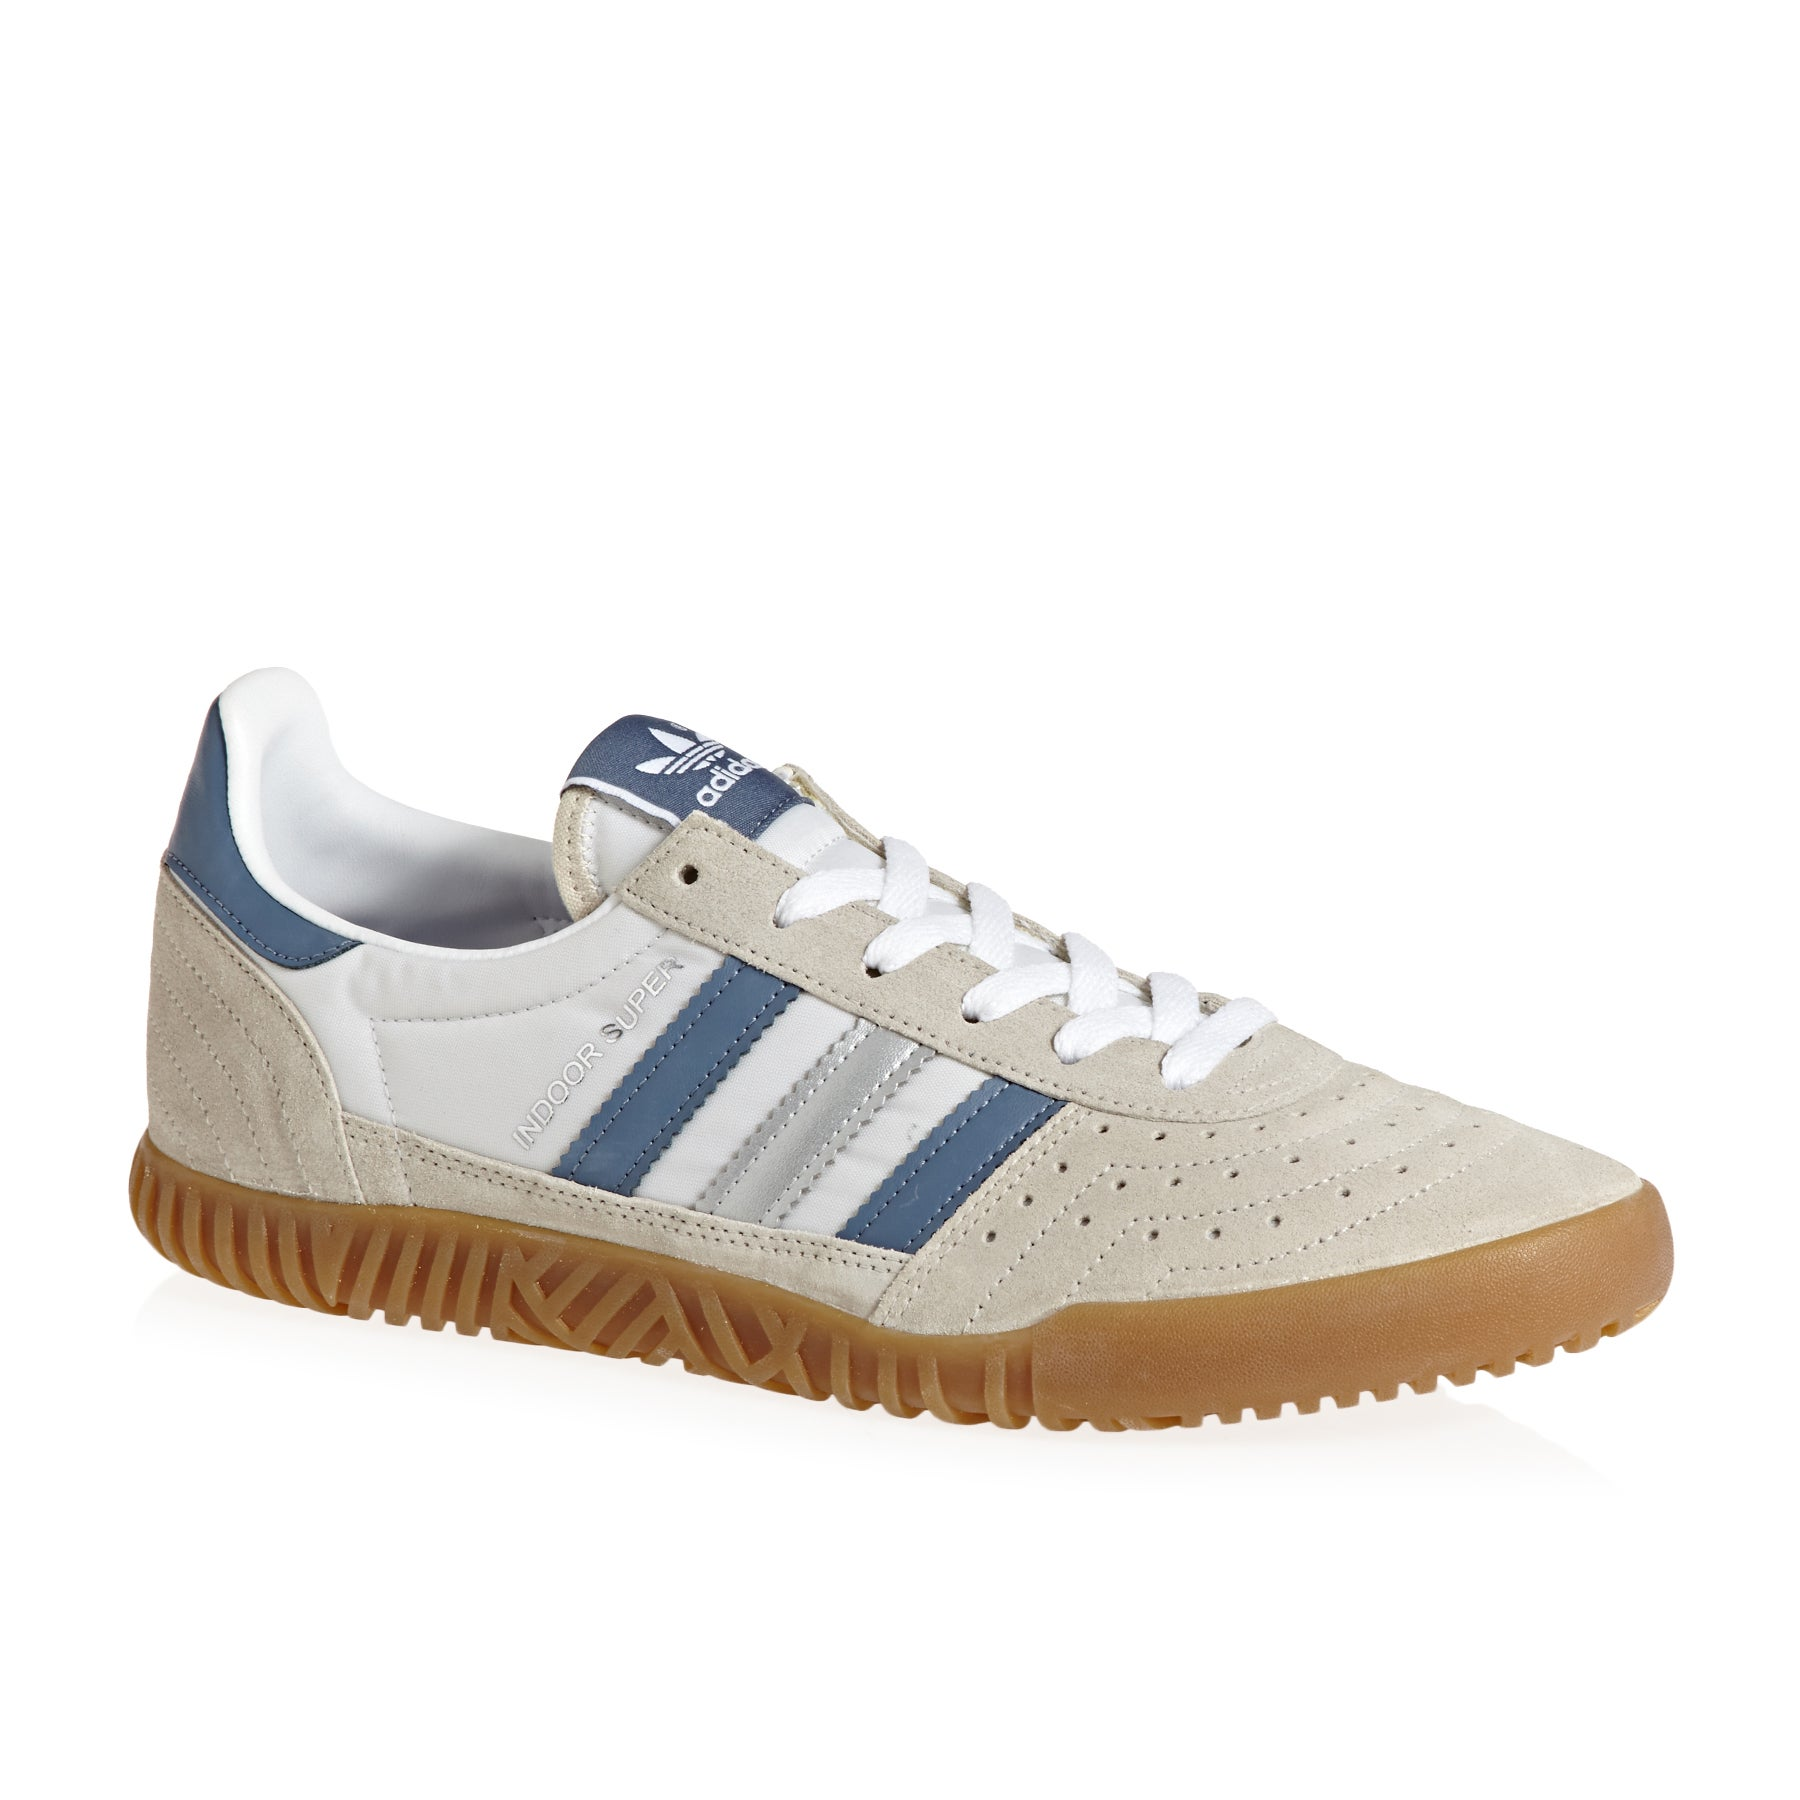 234e161b4feb4a Adidas Originals Indoor Super Shoes available from Surfdome